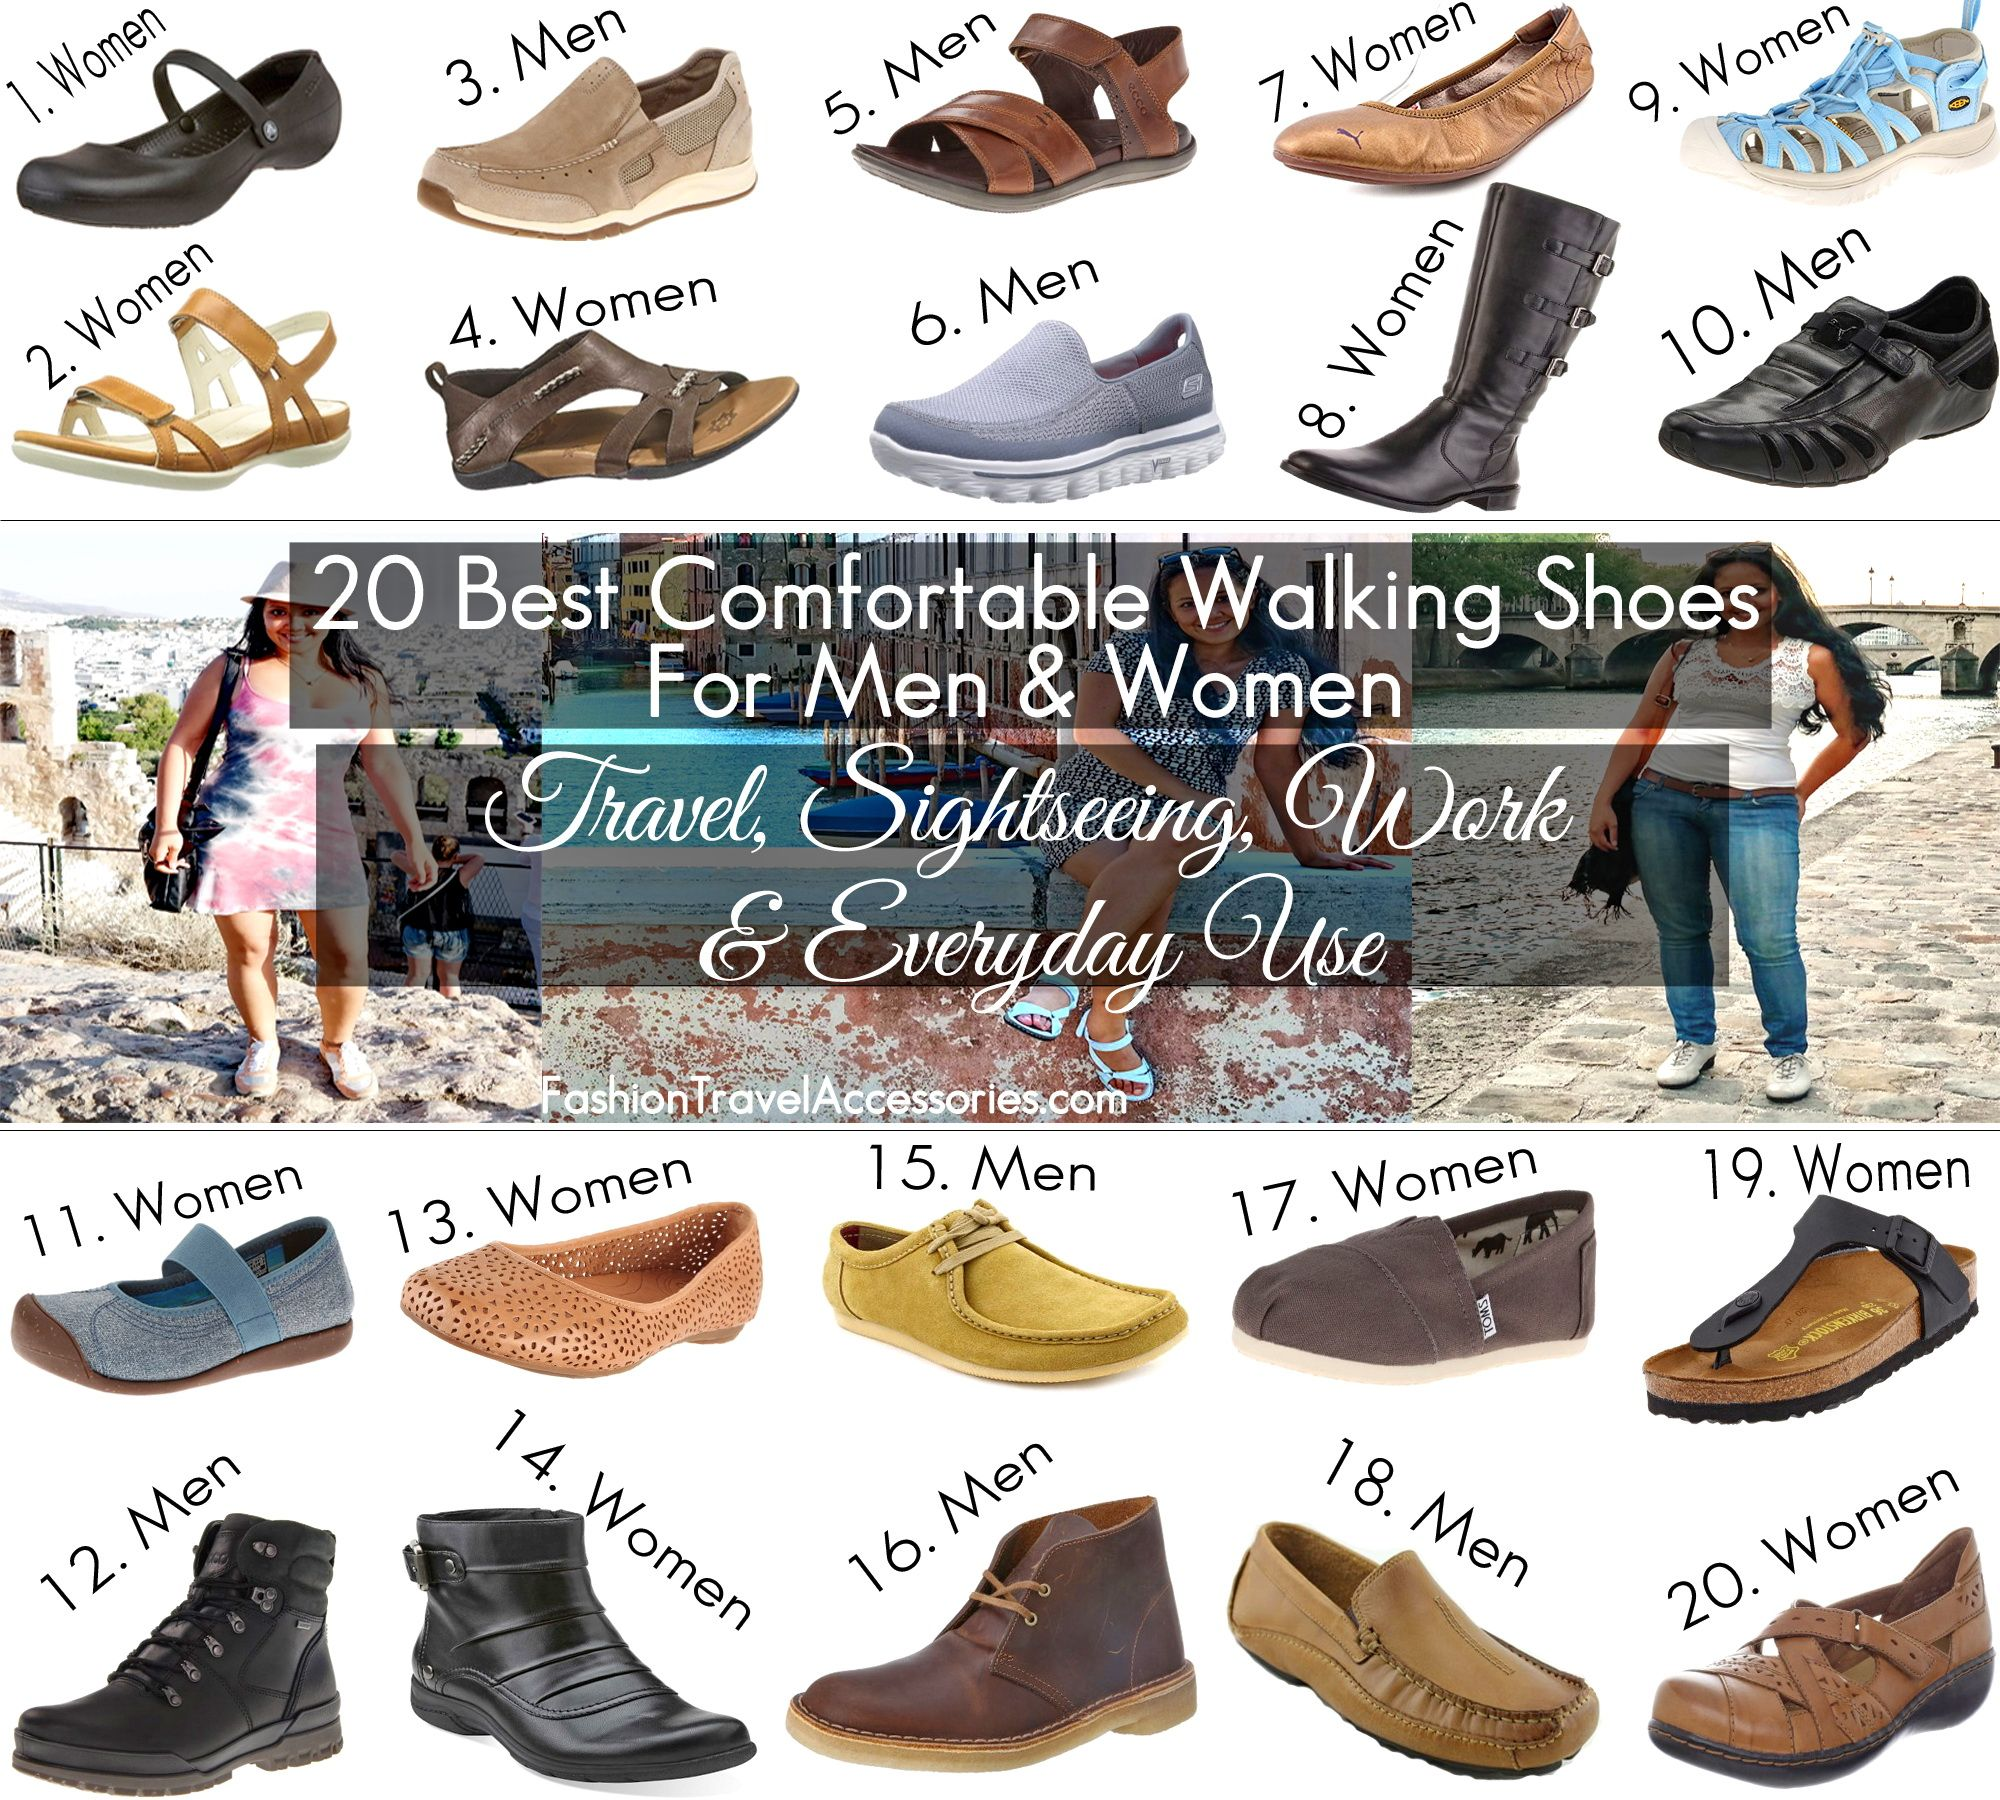 Top 5 Most Comfortable Walking Shoes